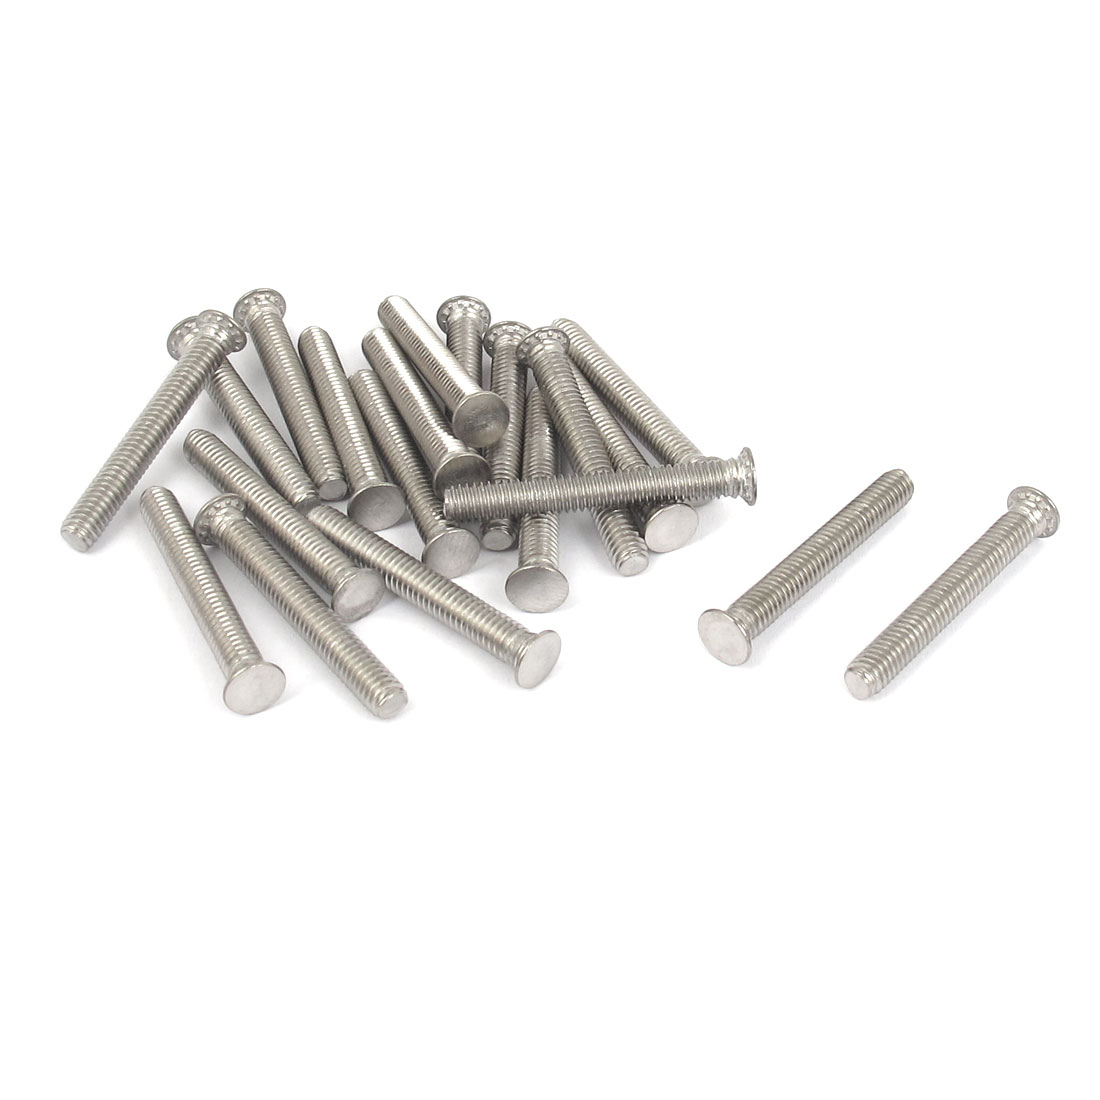 M4x30mm Flush Head Stainless Steel Self Clinching Threaded Studs Fastener 20pcs